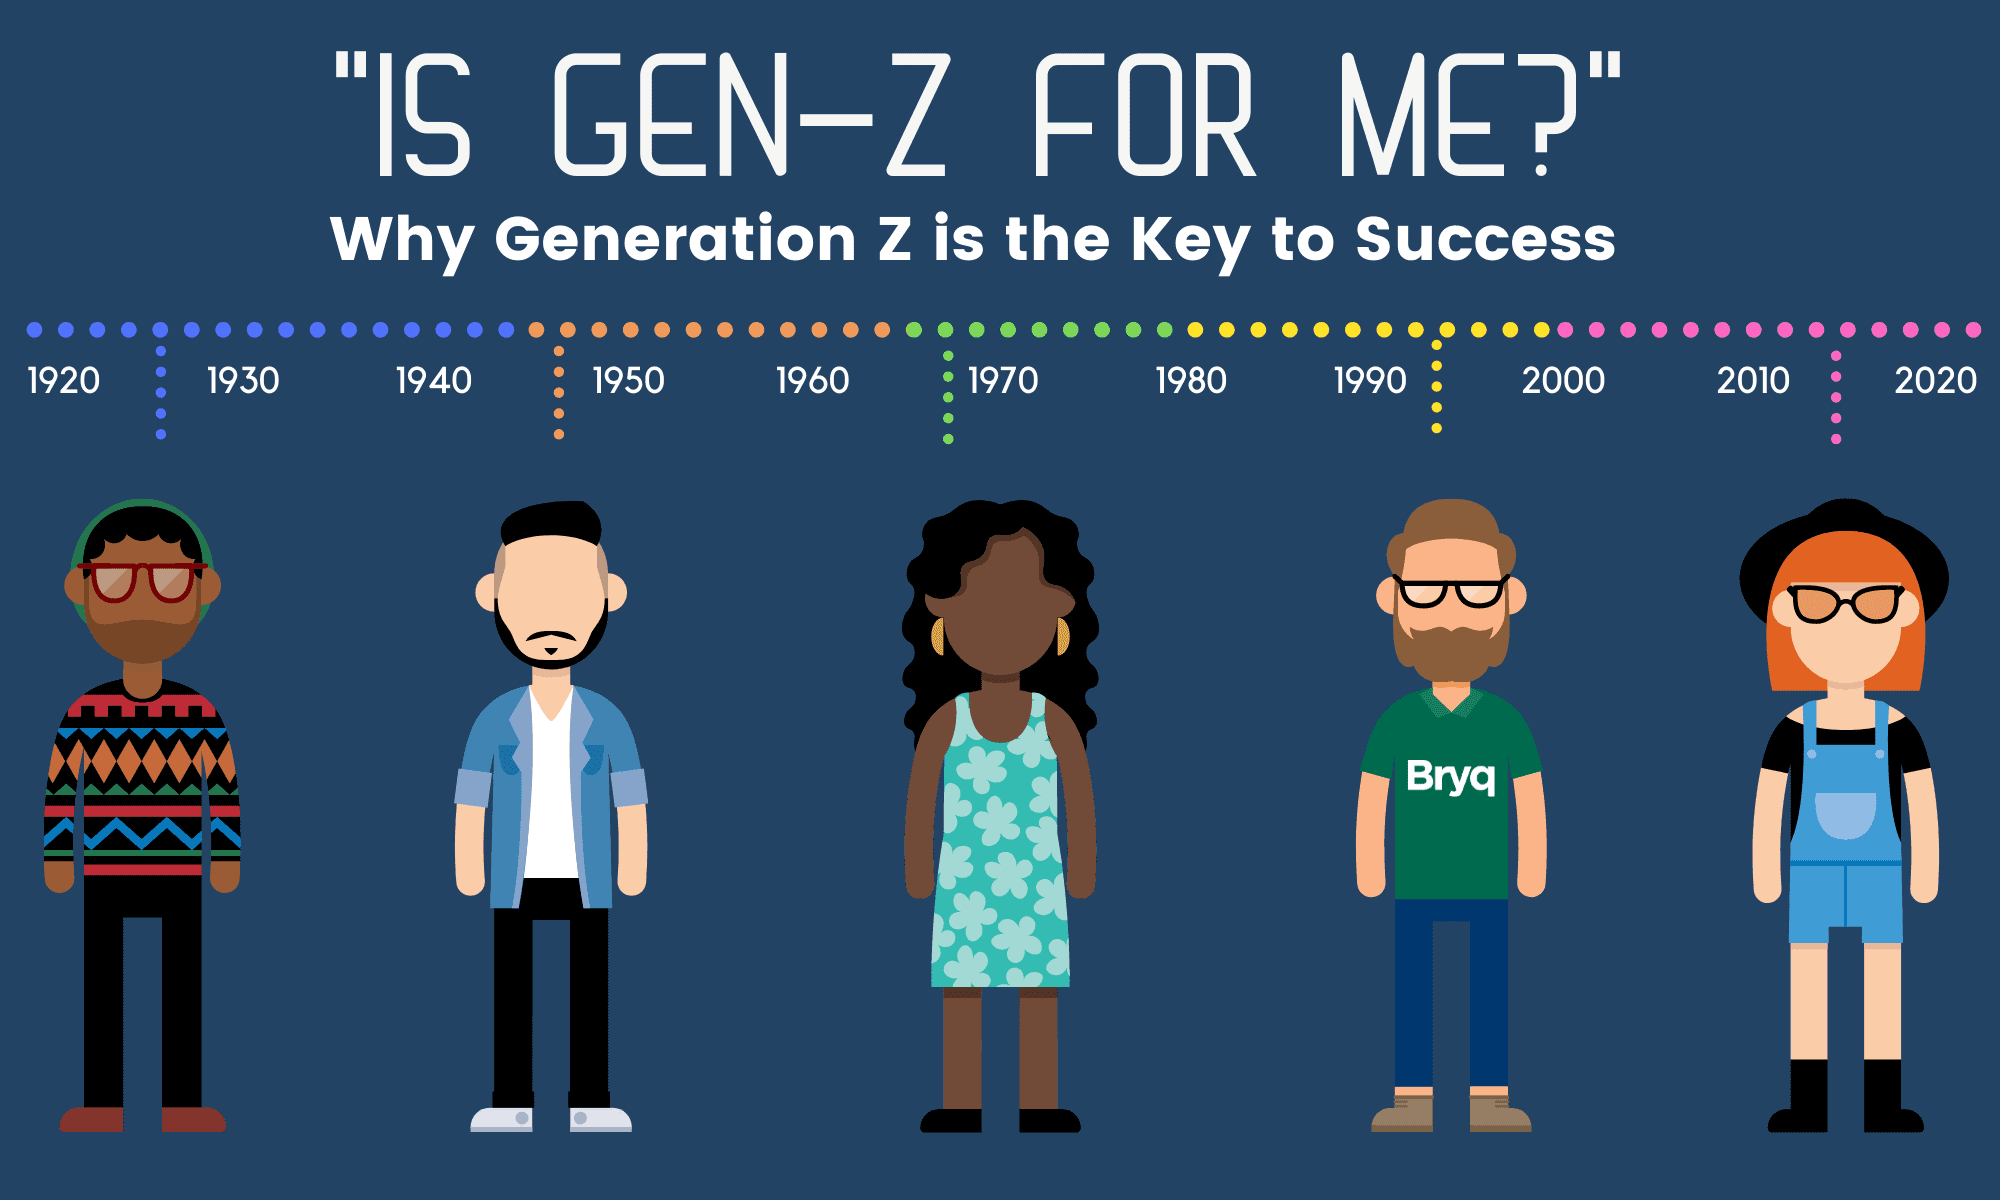 Generation Z is the most diverse generation of workers.